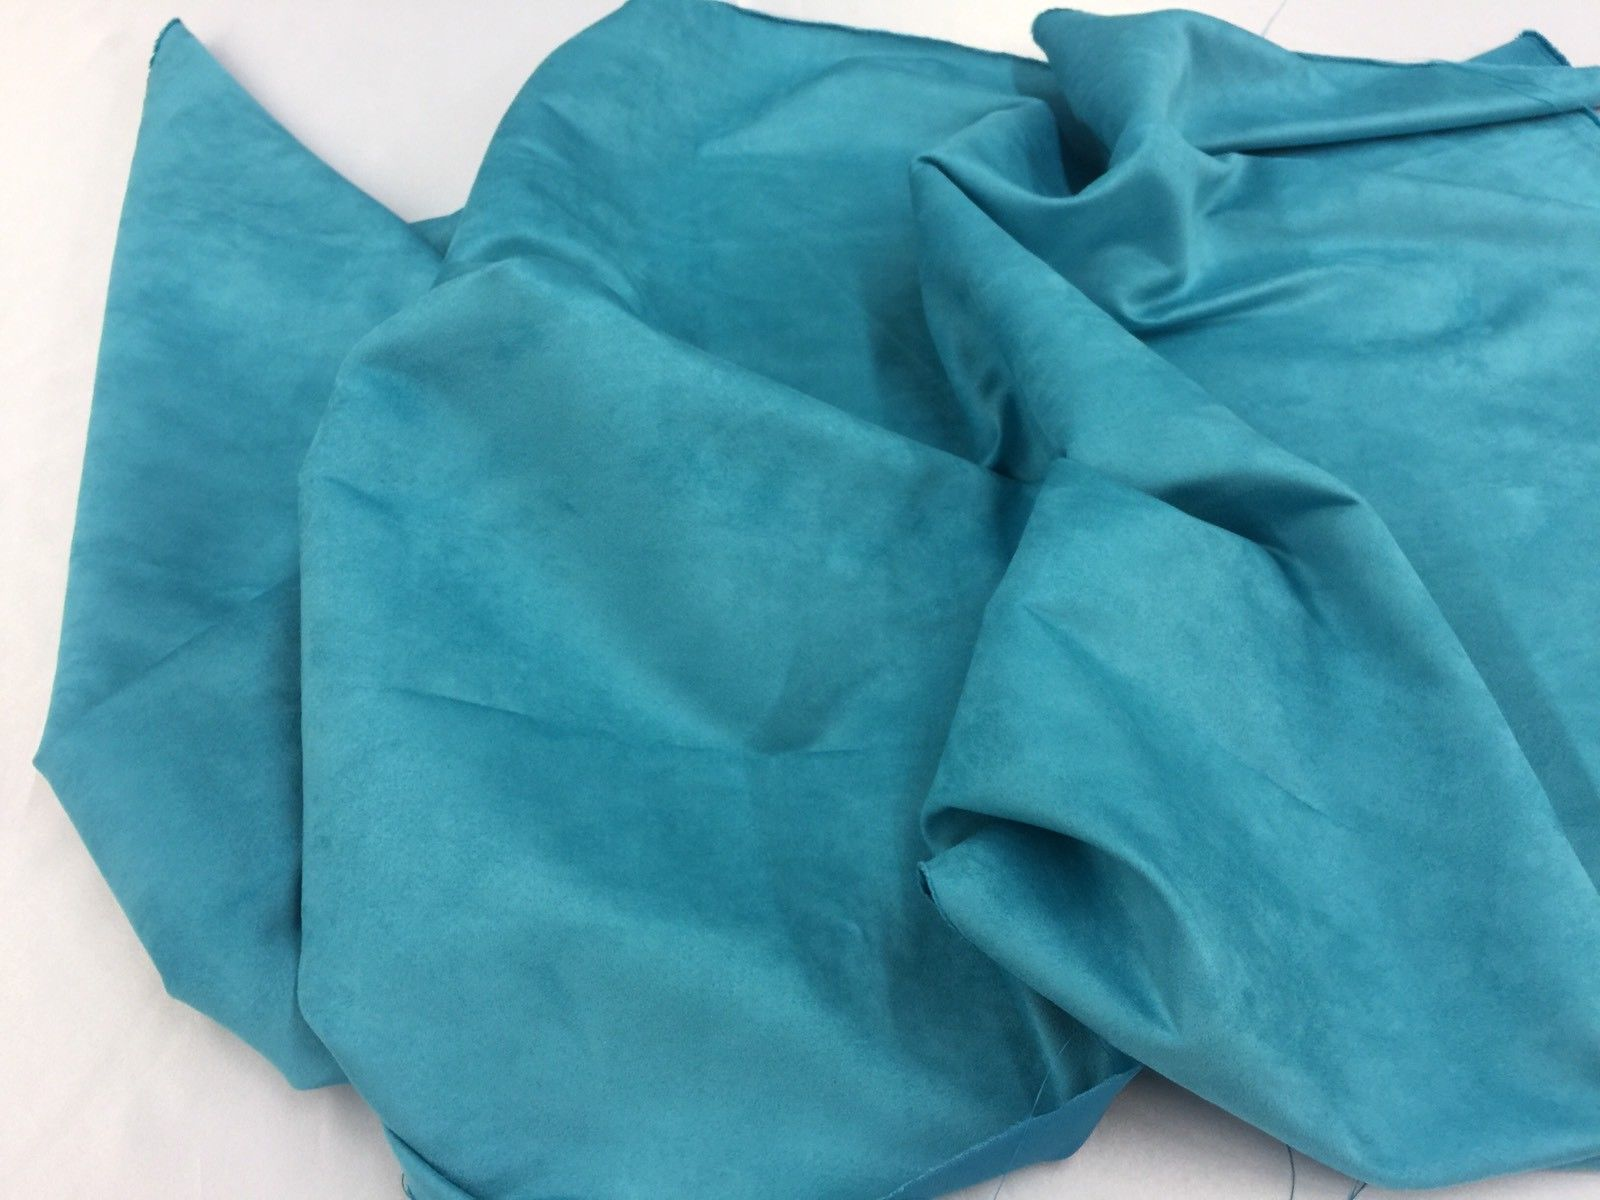 Microfiber Suede Fabric Upholstery Turquoise By Yard - KINGDOM OF FABRICS